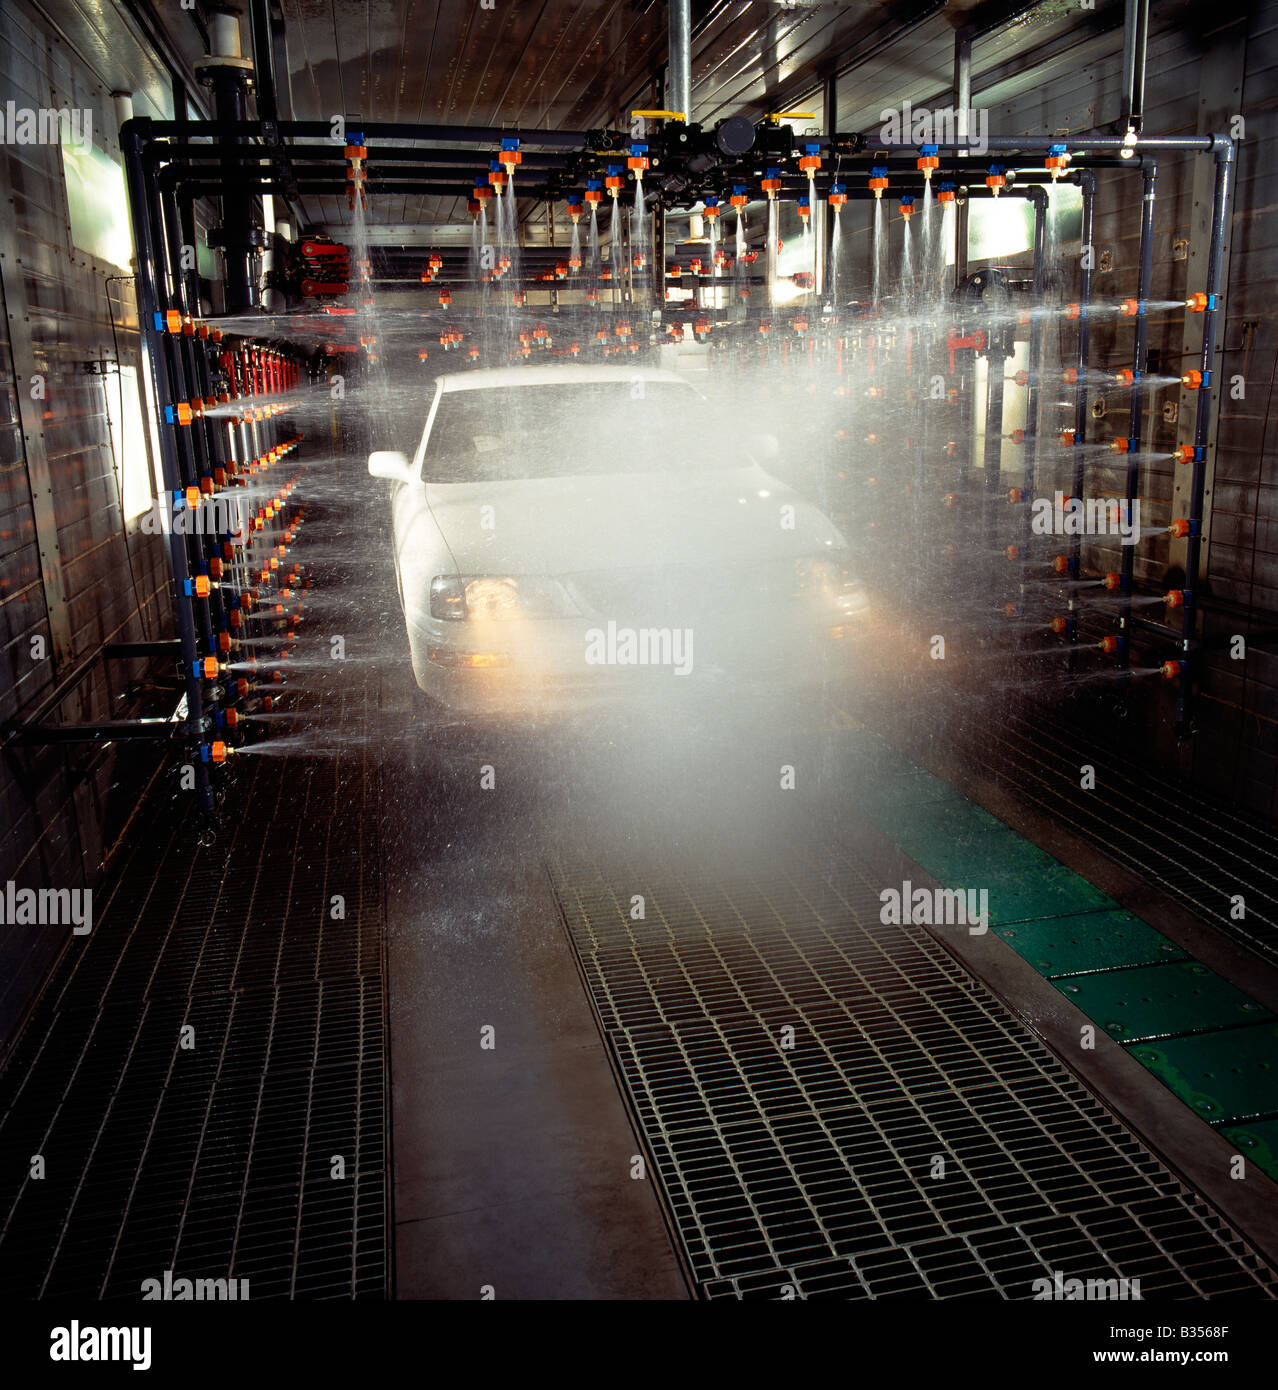 High pressure water used to test new automobile for leaks in an auto manufacturing plant Stock Photo